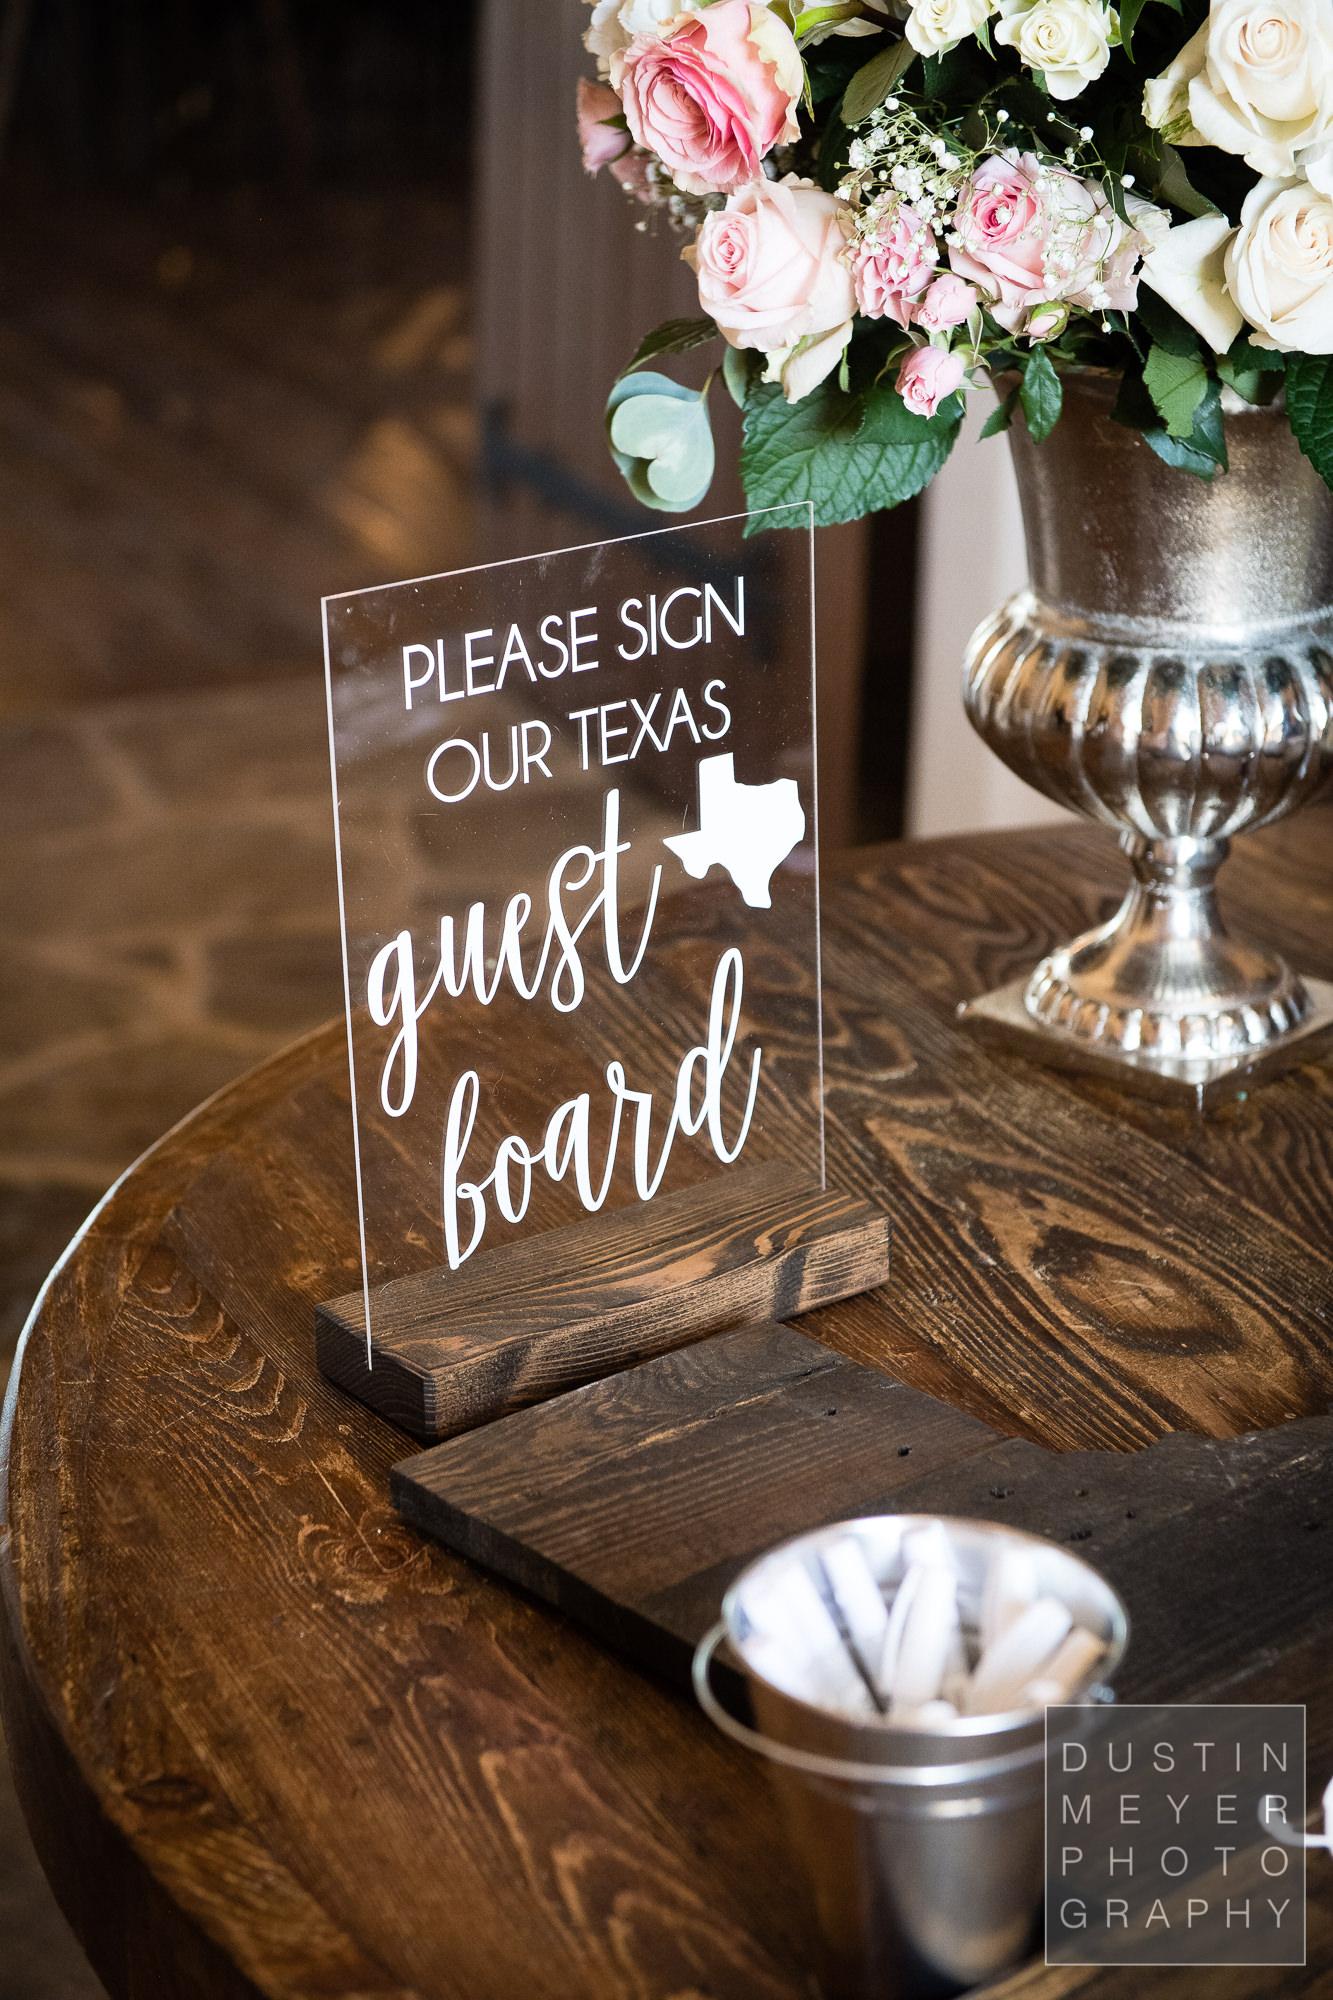 A custom sign-in clear sign for wedding guests